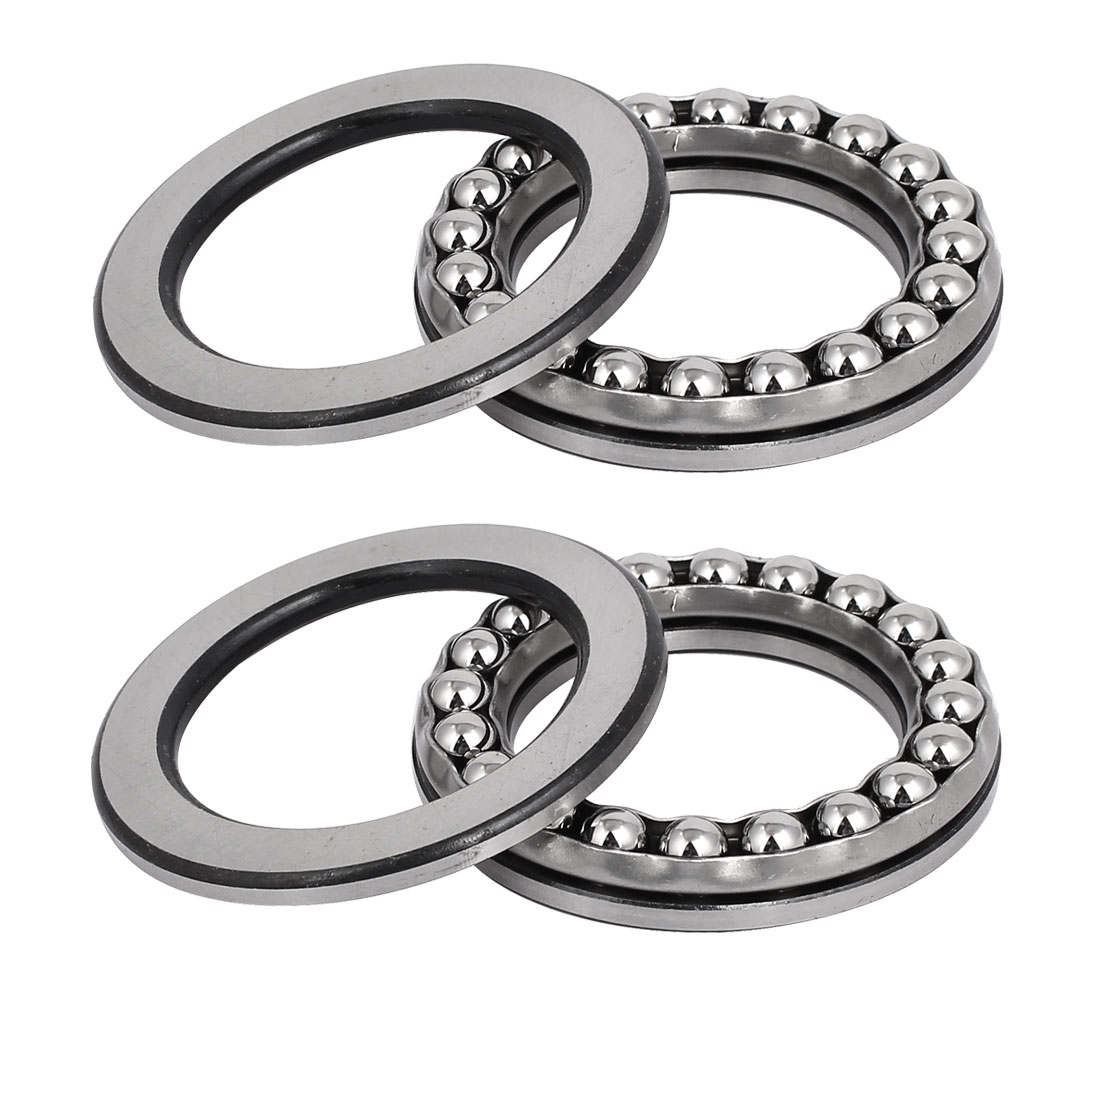 40mmx60mmx13mm Single Row Thrust Ball Bearing 51108 2pcs